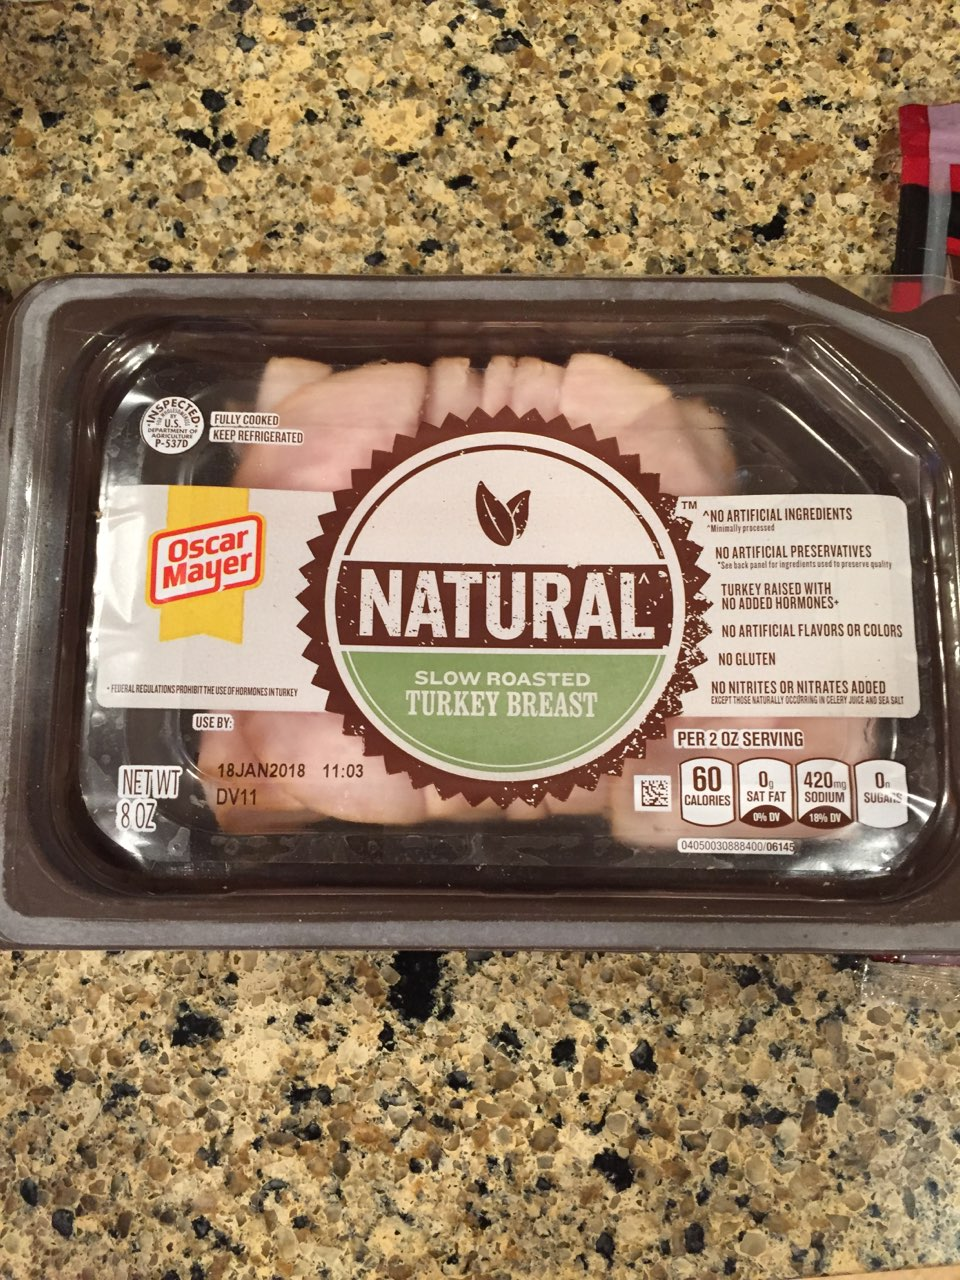 Oscar Mayer Selects Turkey Breast, Slow Roasted: Calories, Nutrition Analysis & More Fooducate